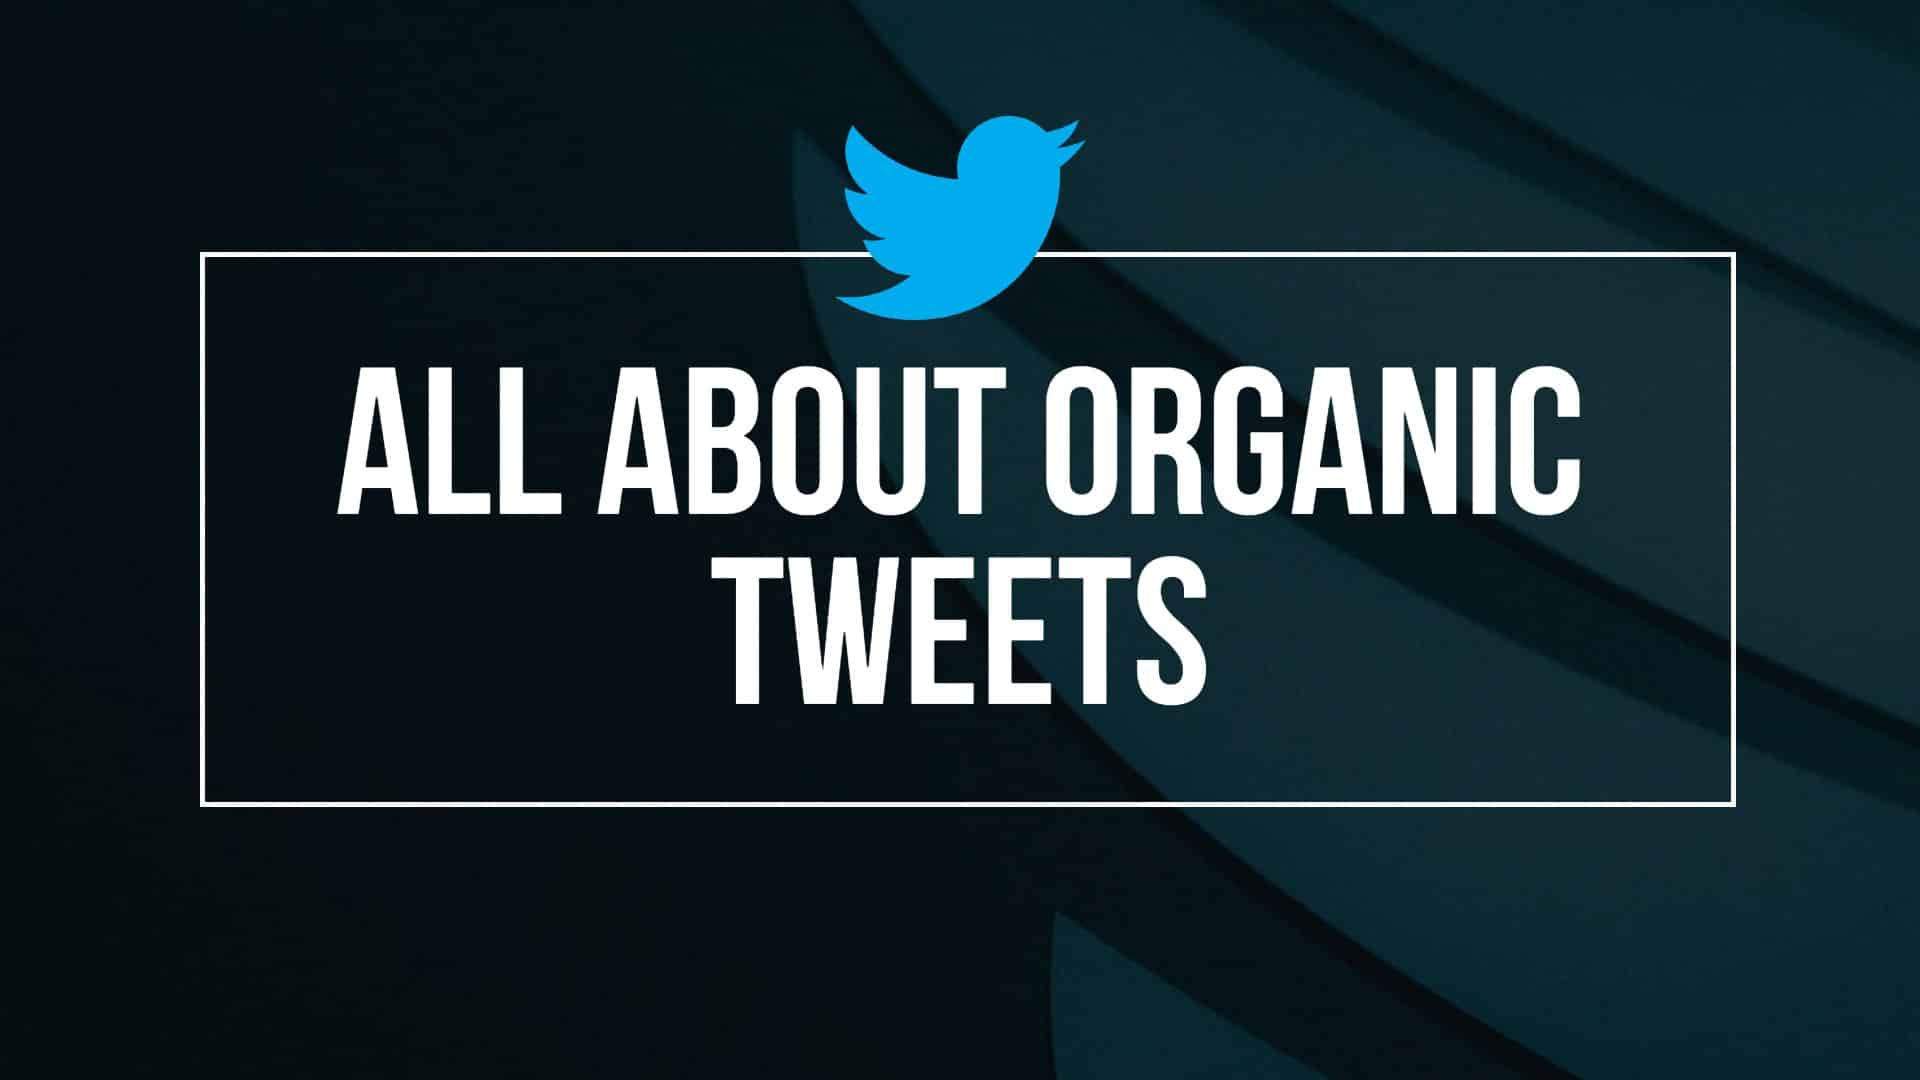 All About Making Organic Tweets